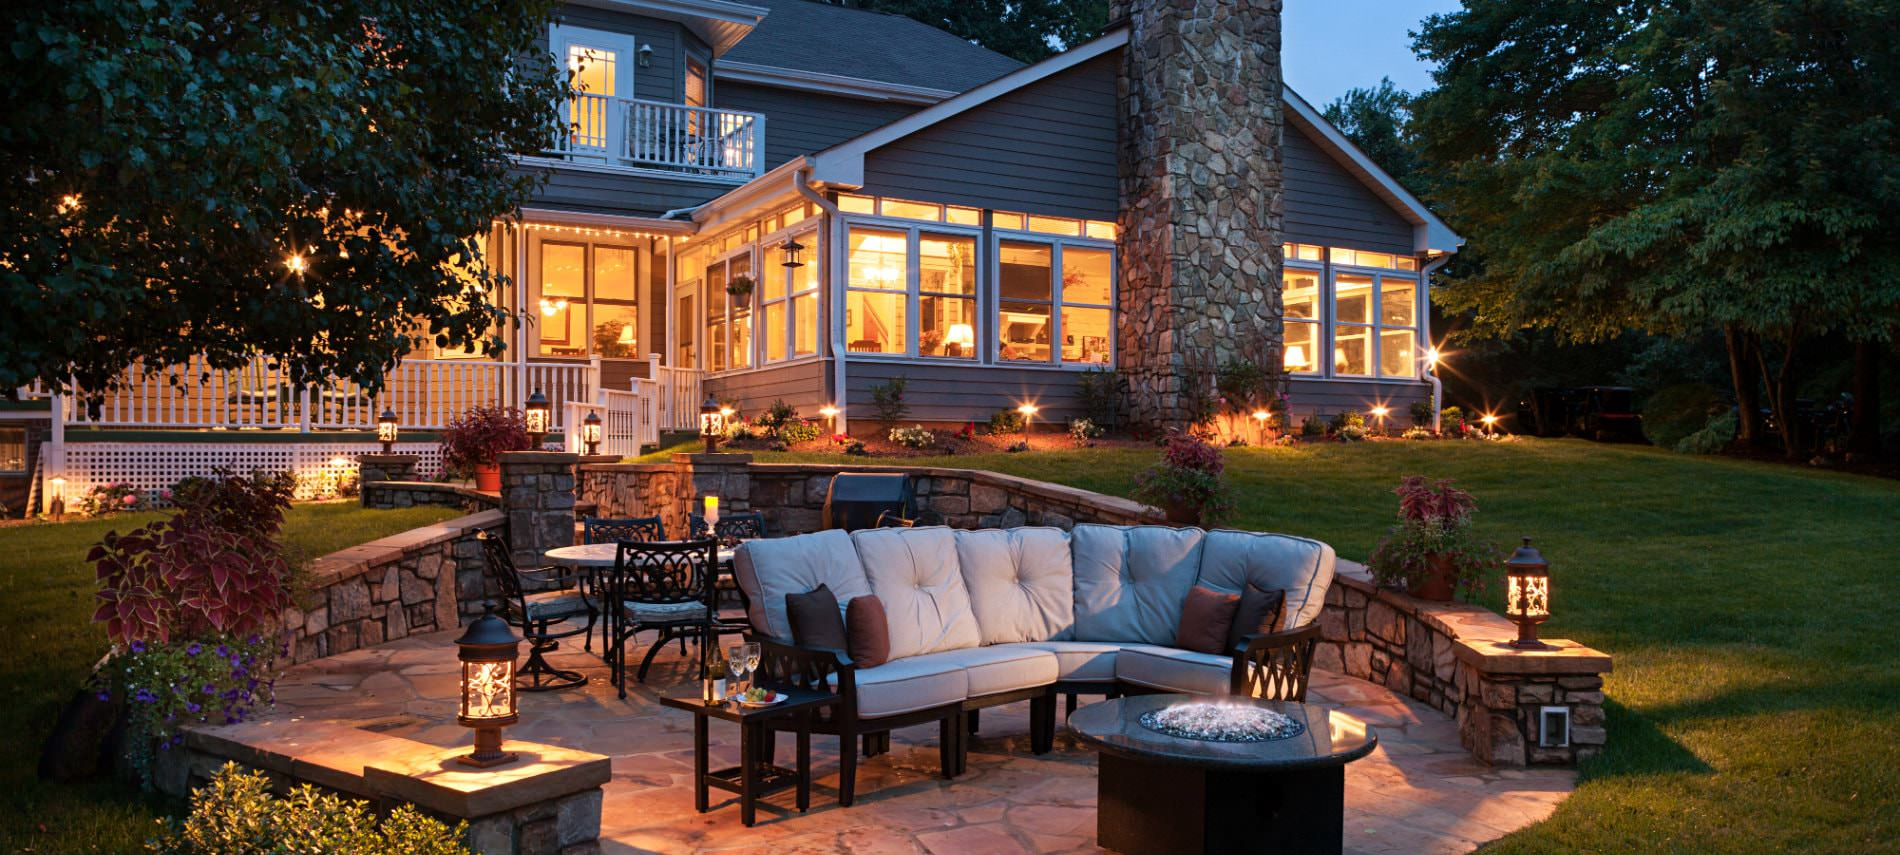 Sunken stone patio with firepit, comfy outdoor furniture, beautiful landscaping, and view of inn with all the lights on